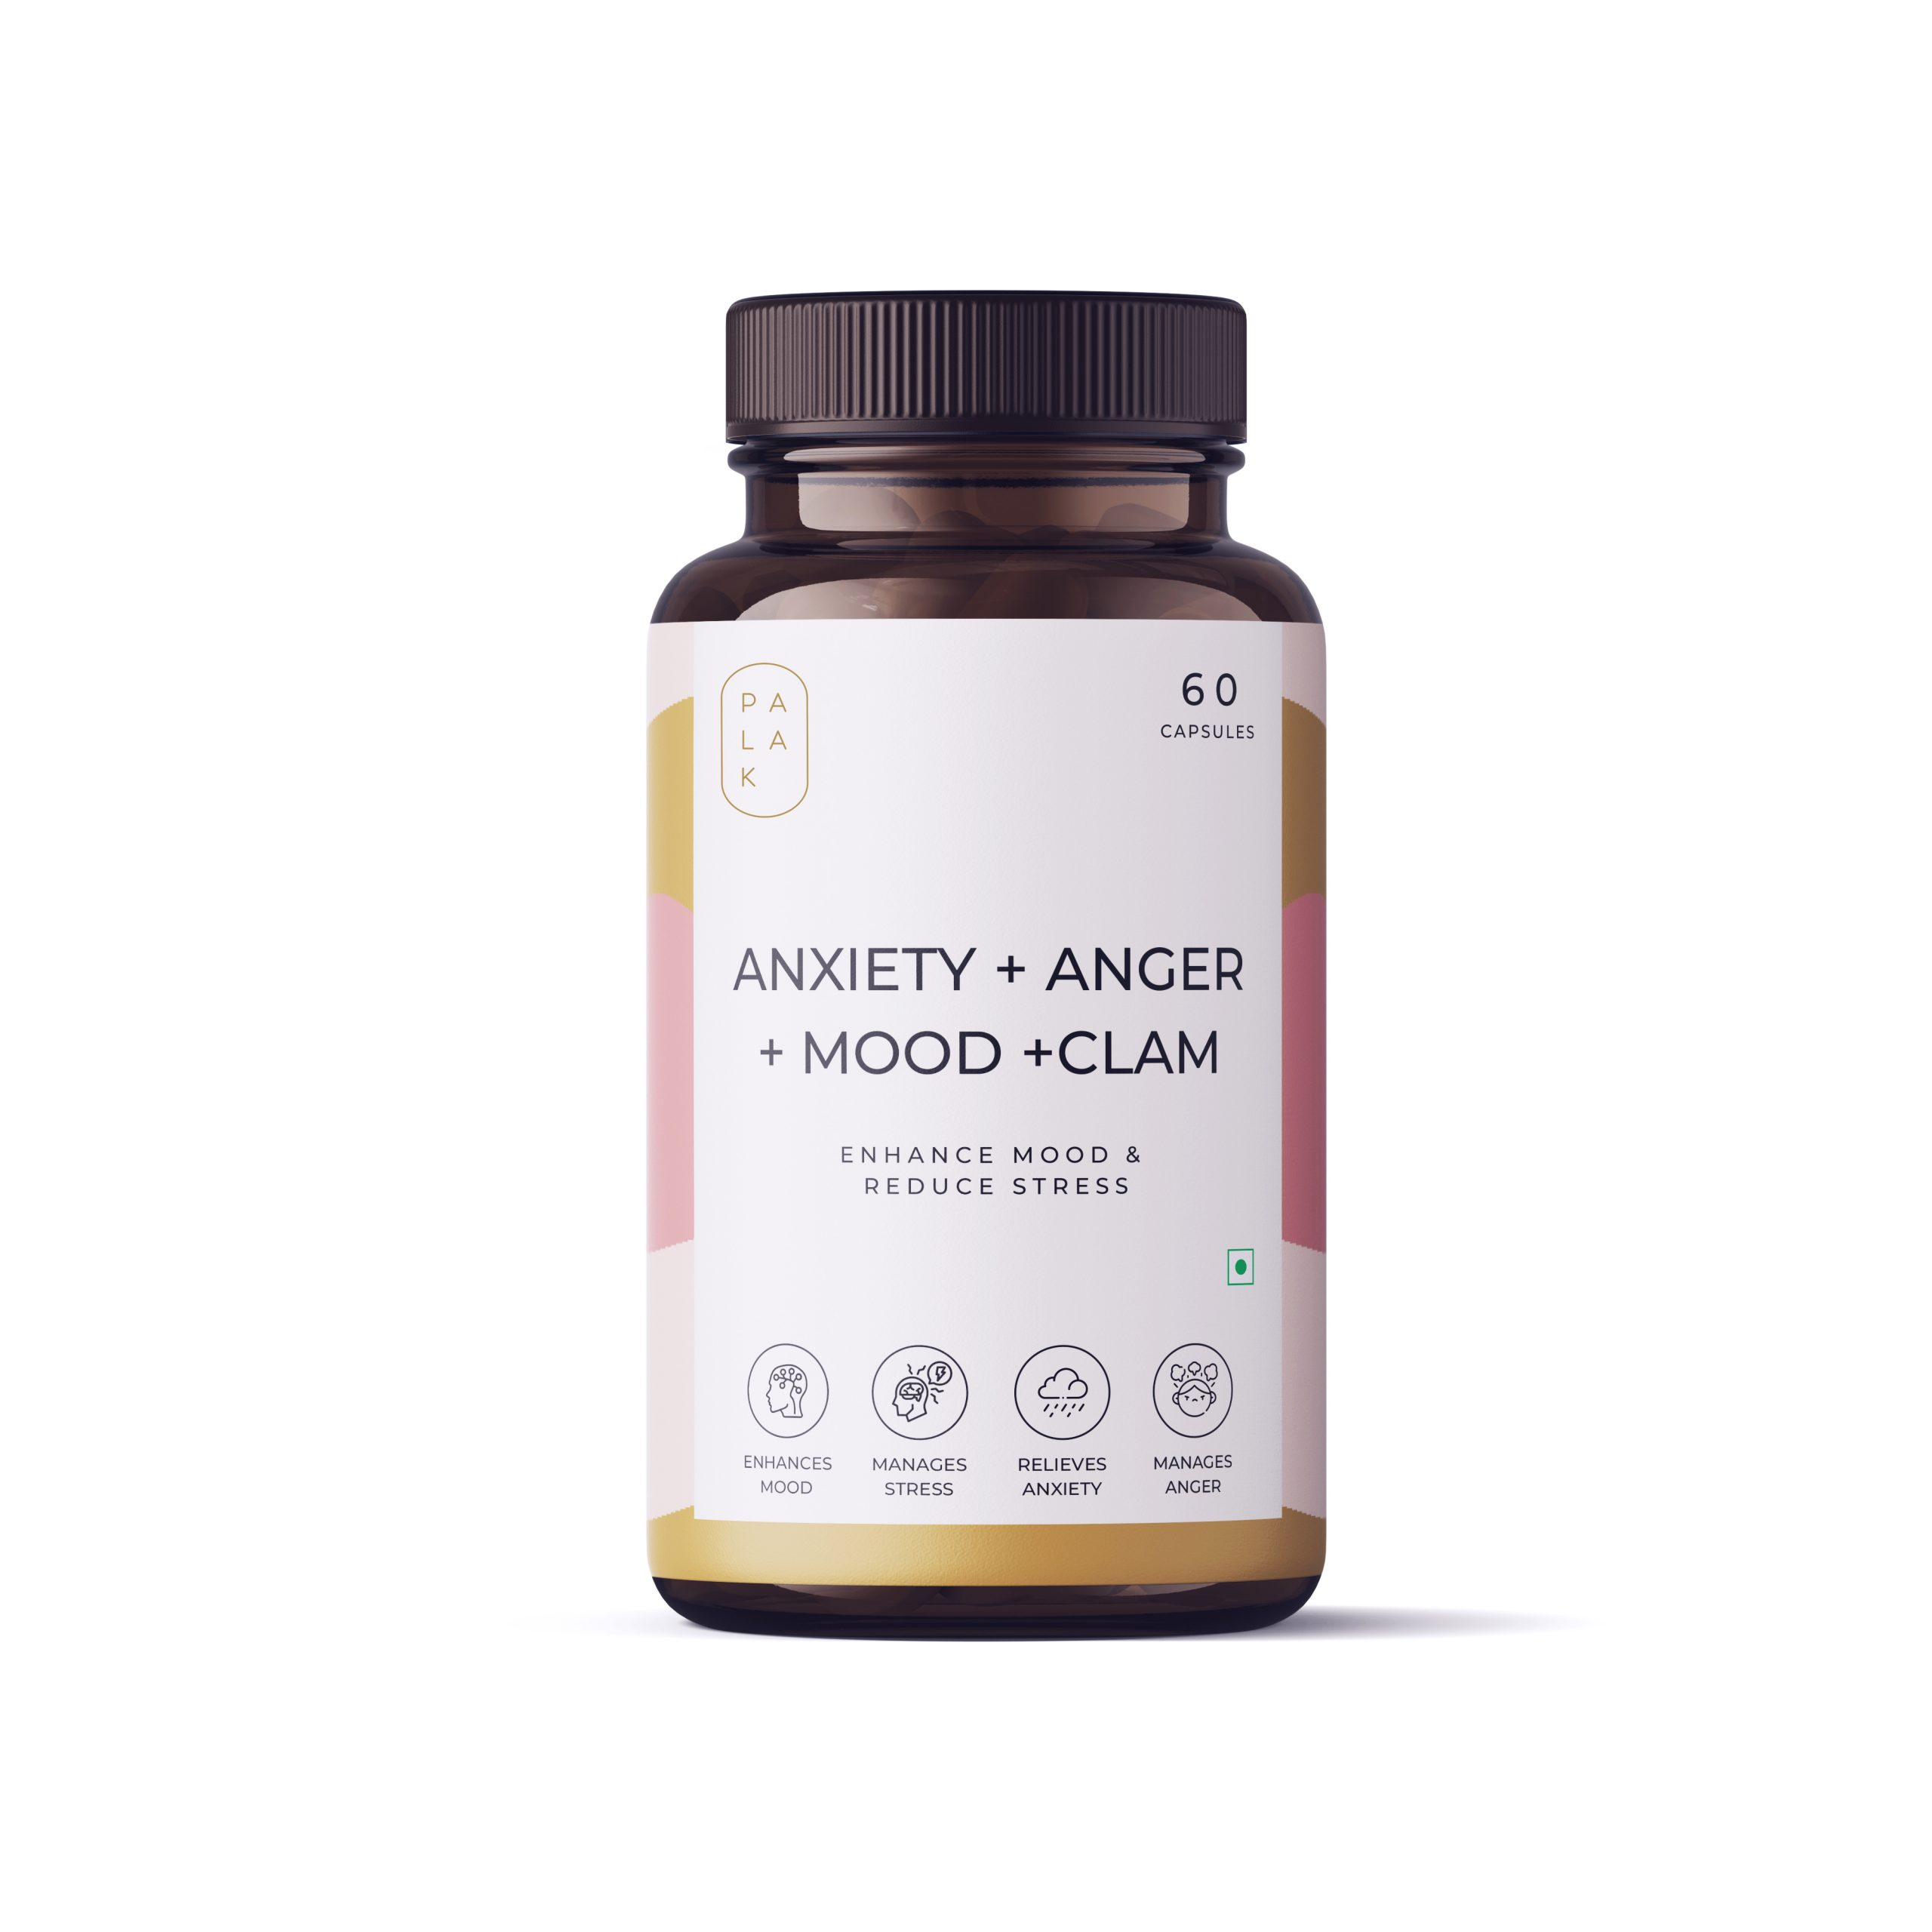 Palak Notes: Anxiety + Anger + Mood + Calm